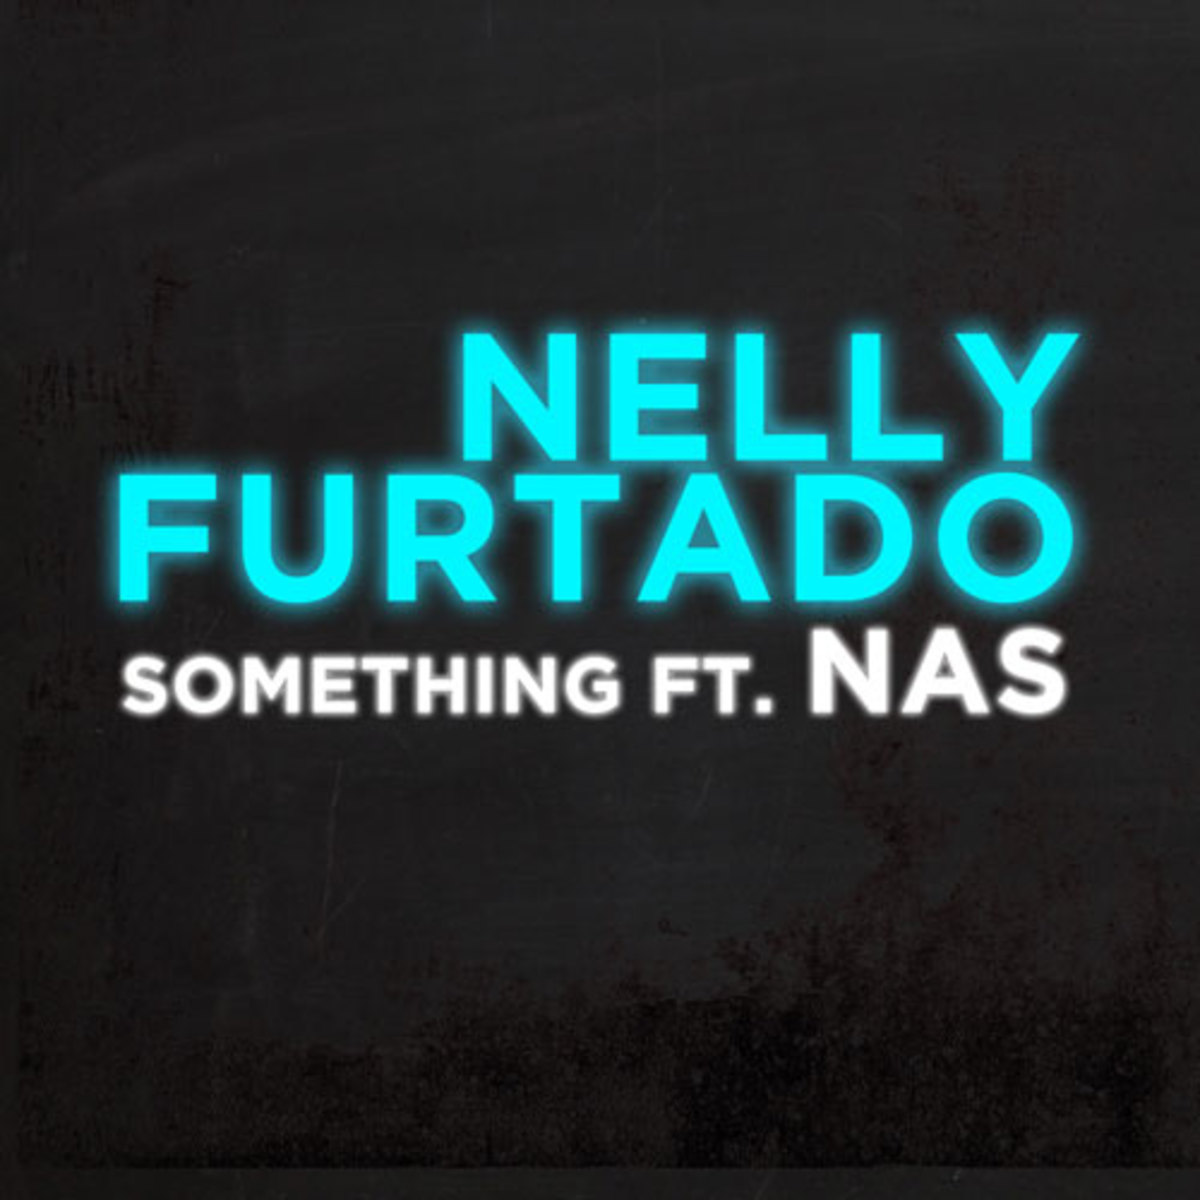 nellyfurtado-something.jpg